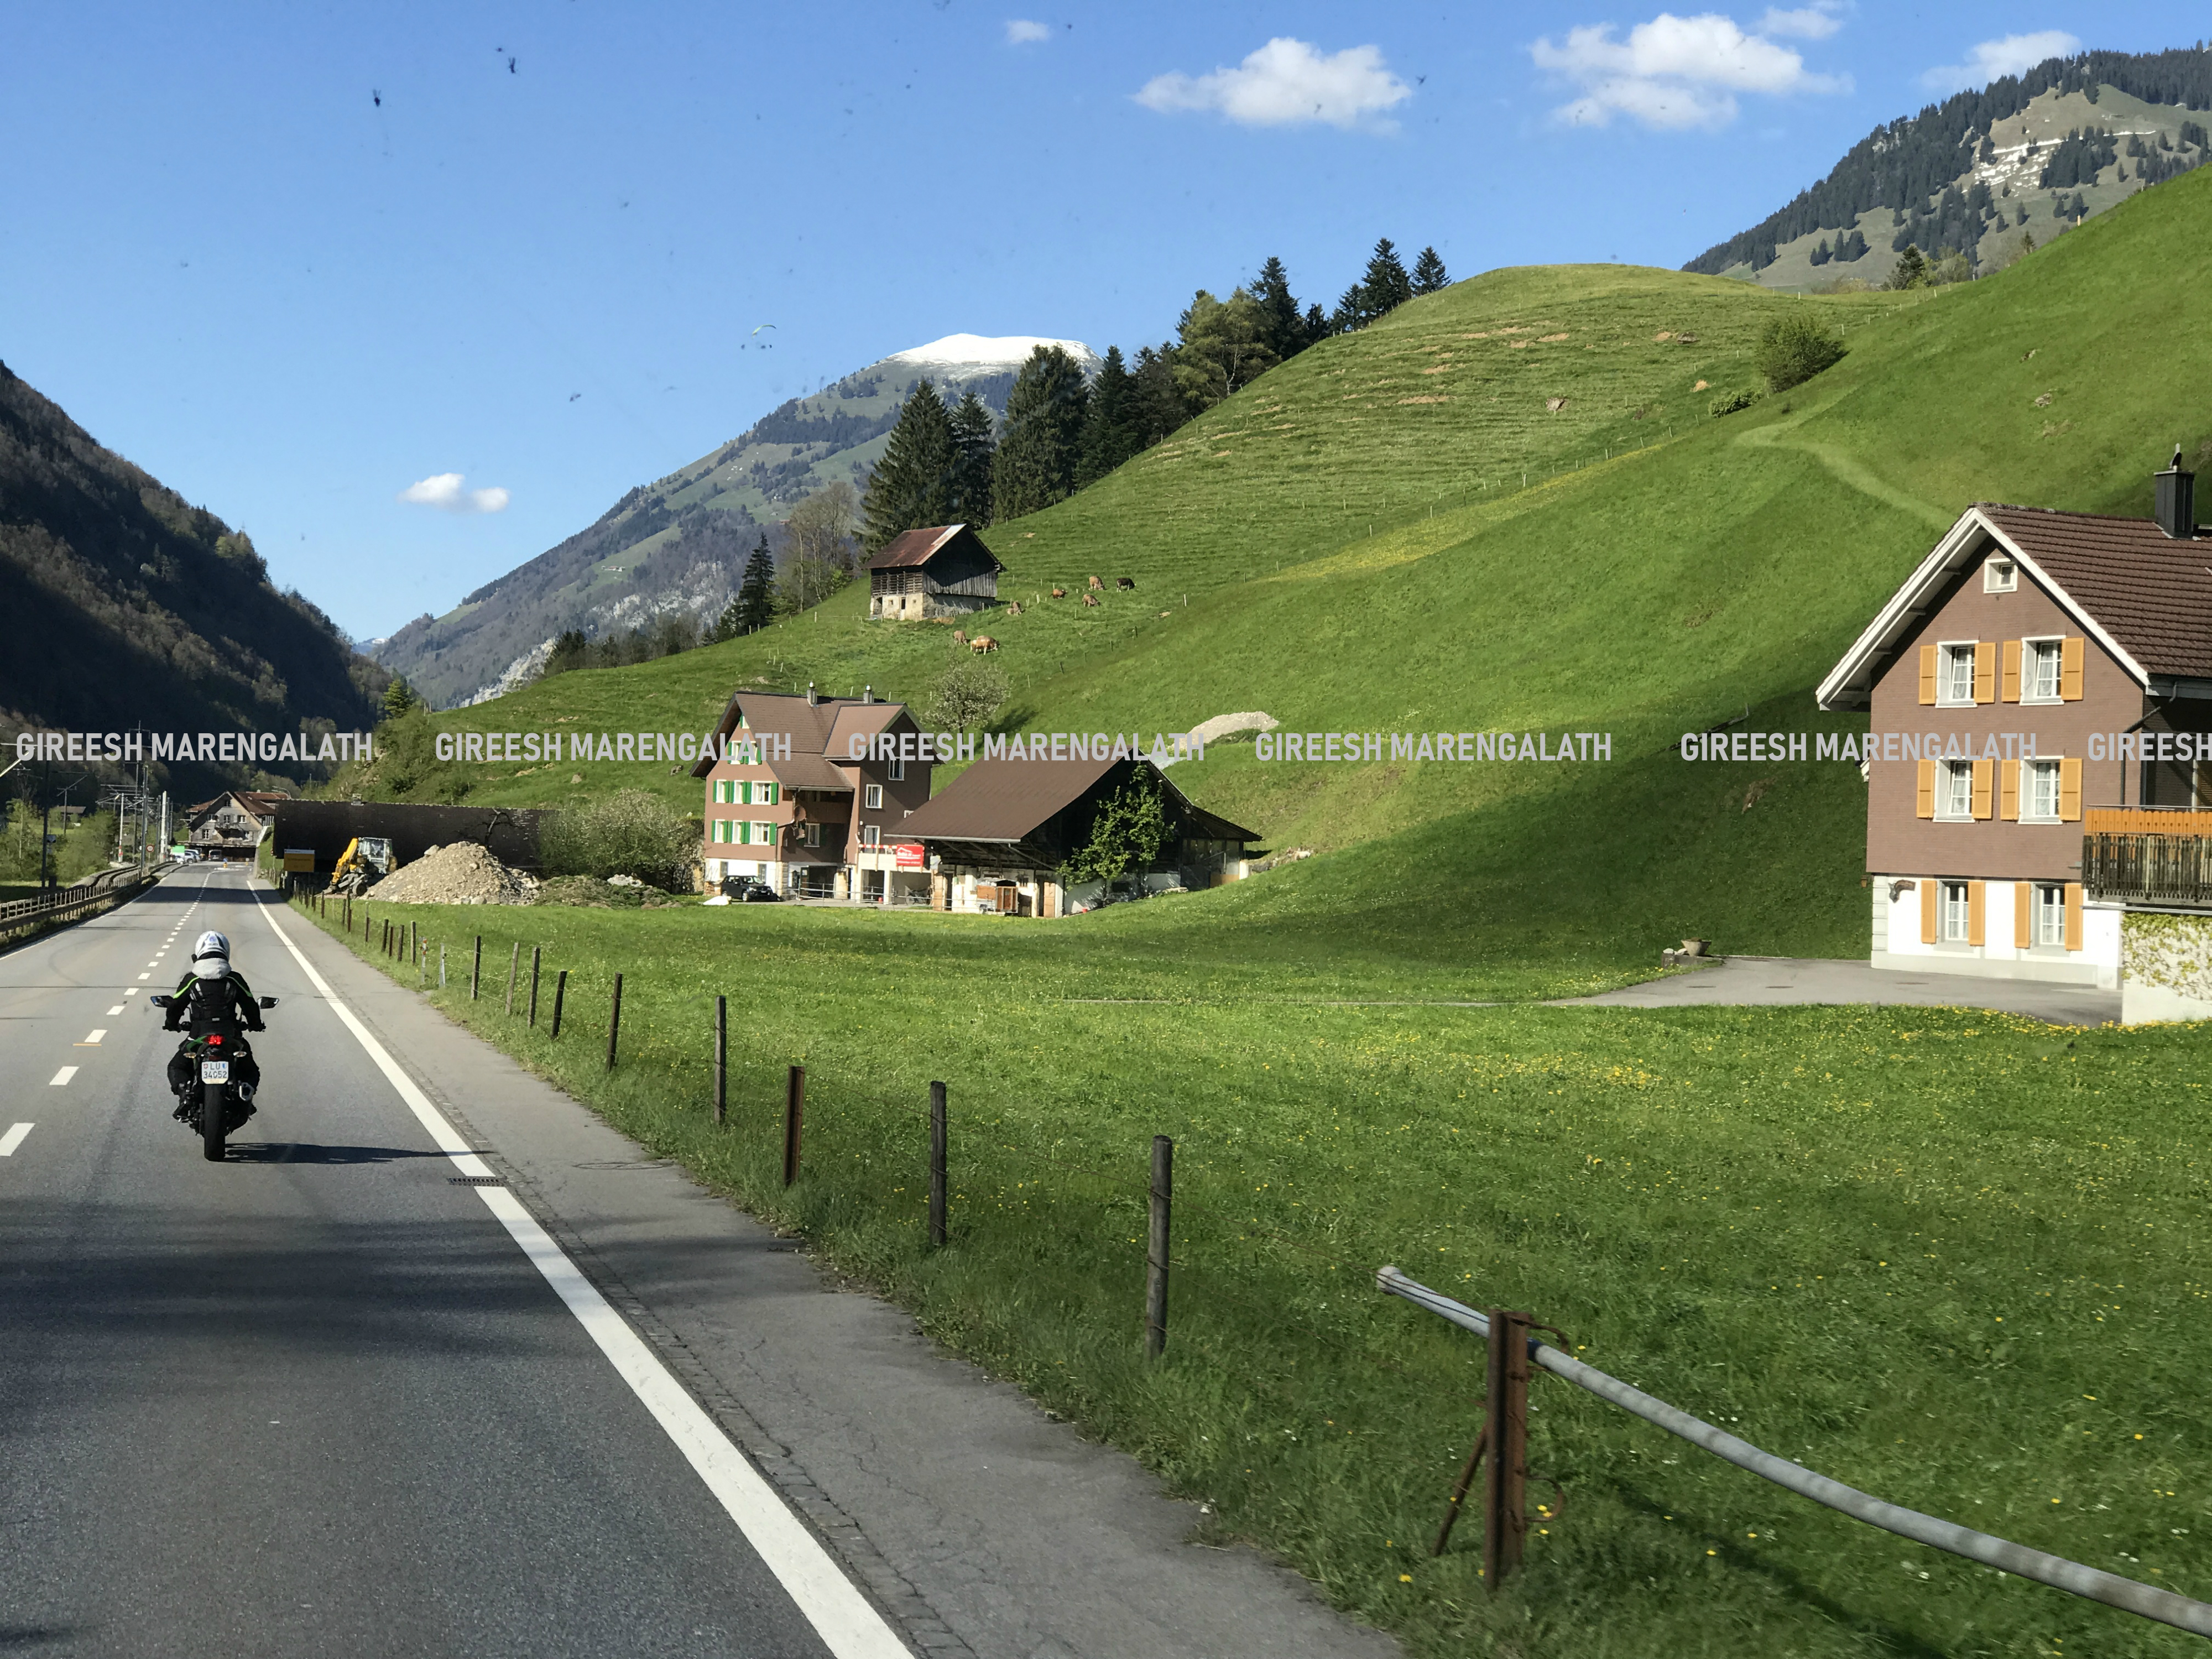 Swiss village. Mobile photo by Gireesh Marengaleth